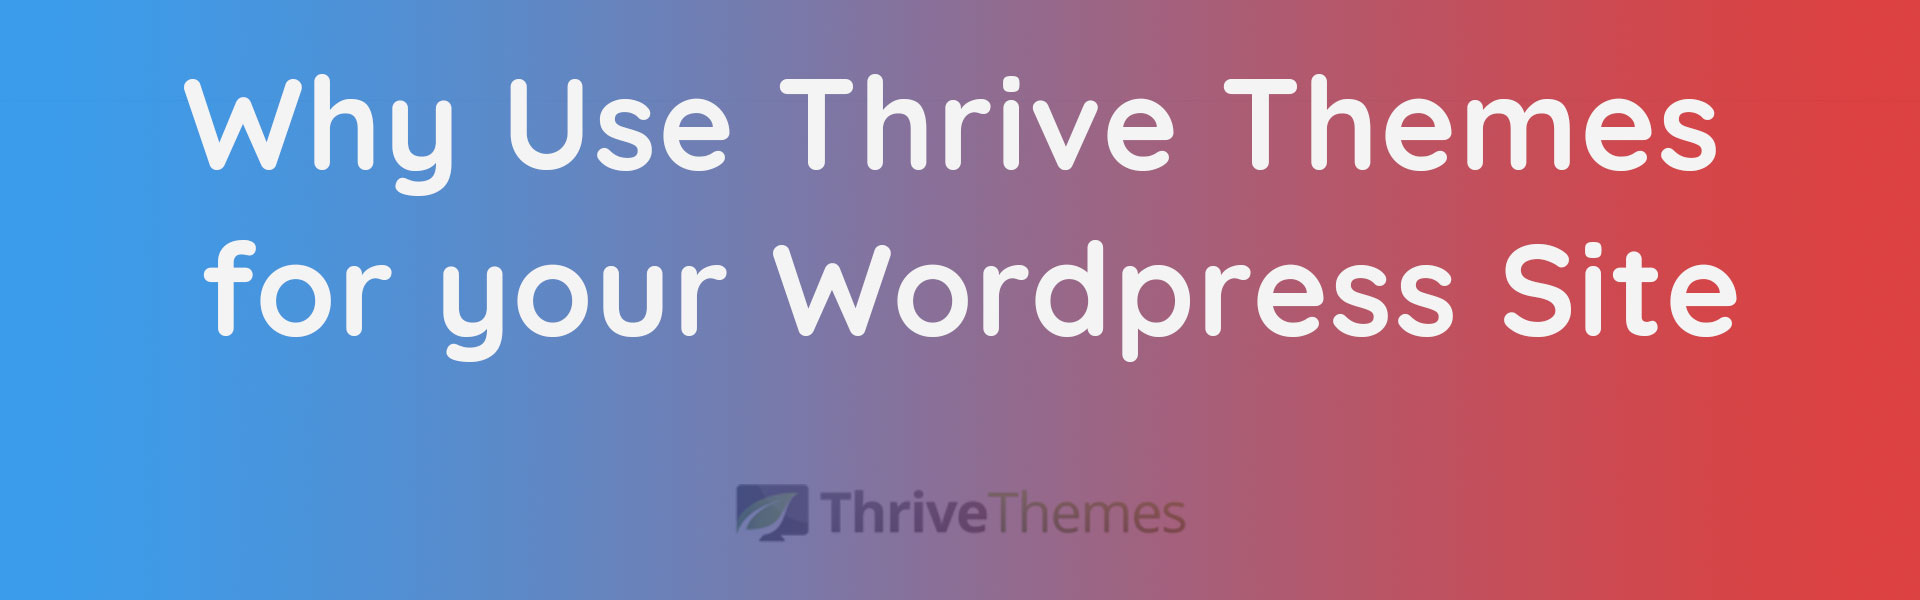 Thrive Themes Warranty Offer June 2020